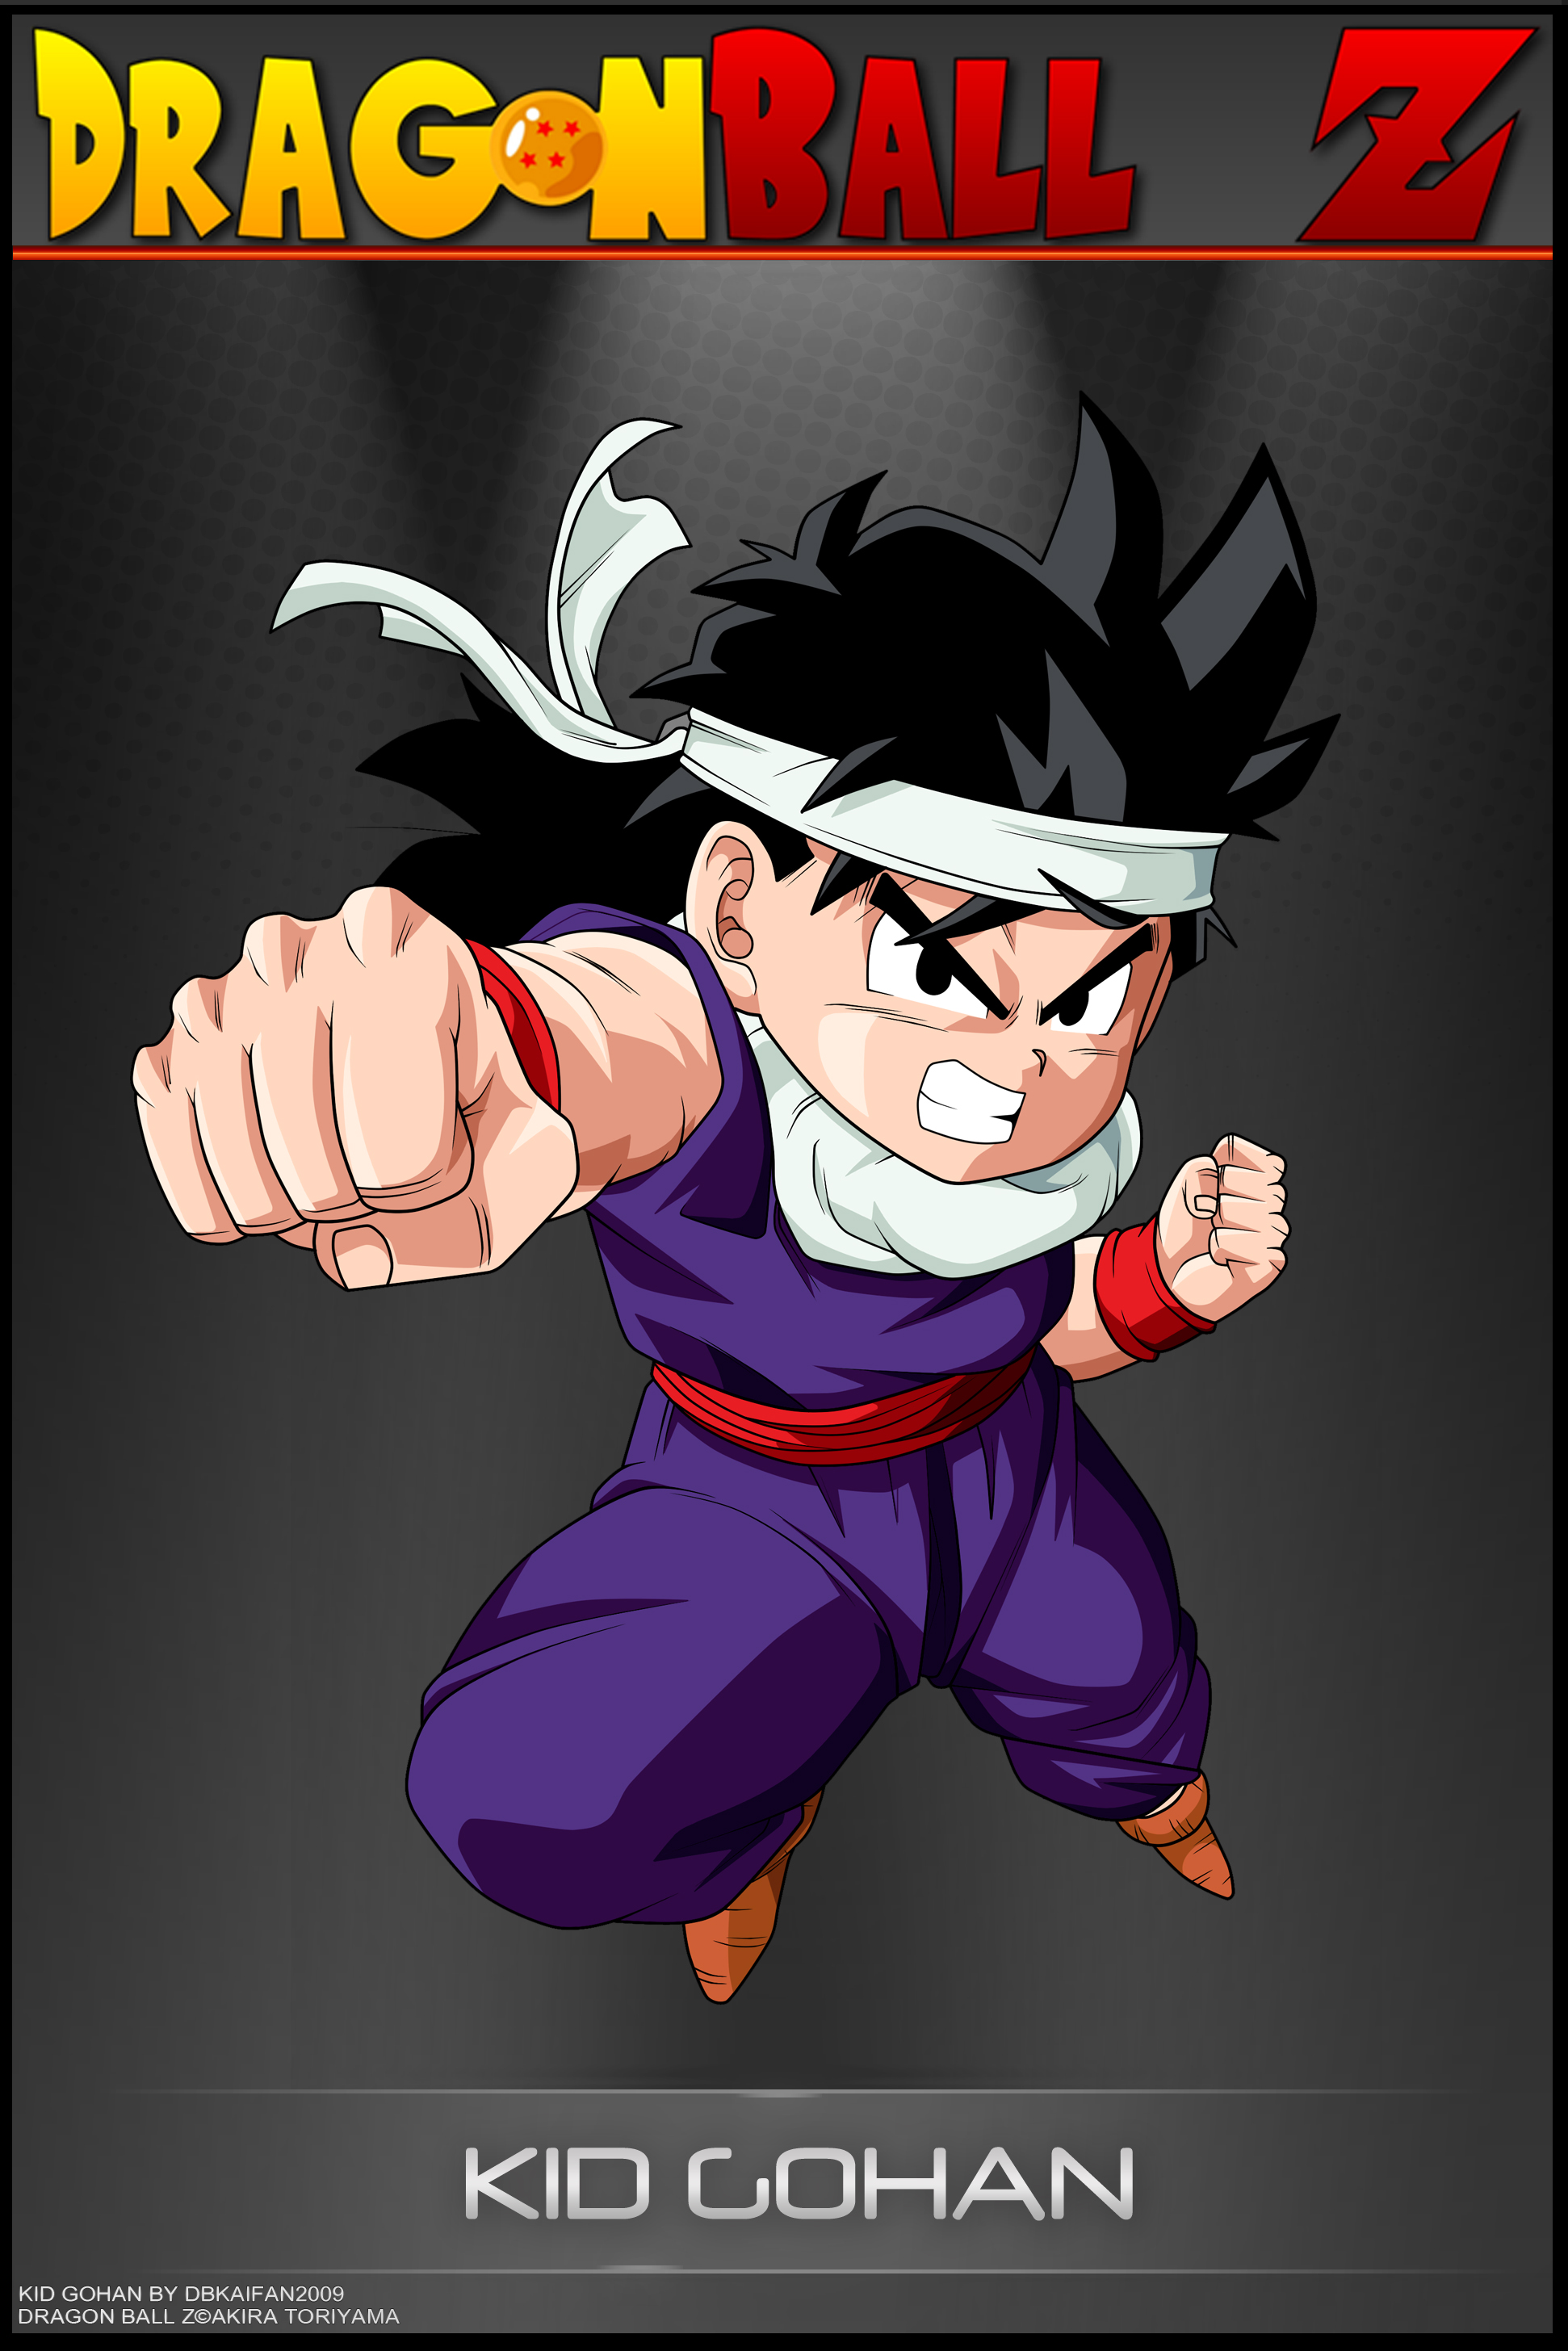 Son gohan dragonball wiki fandom powered by wikia - Dragon ball z gohan images ...